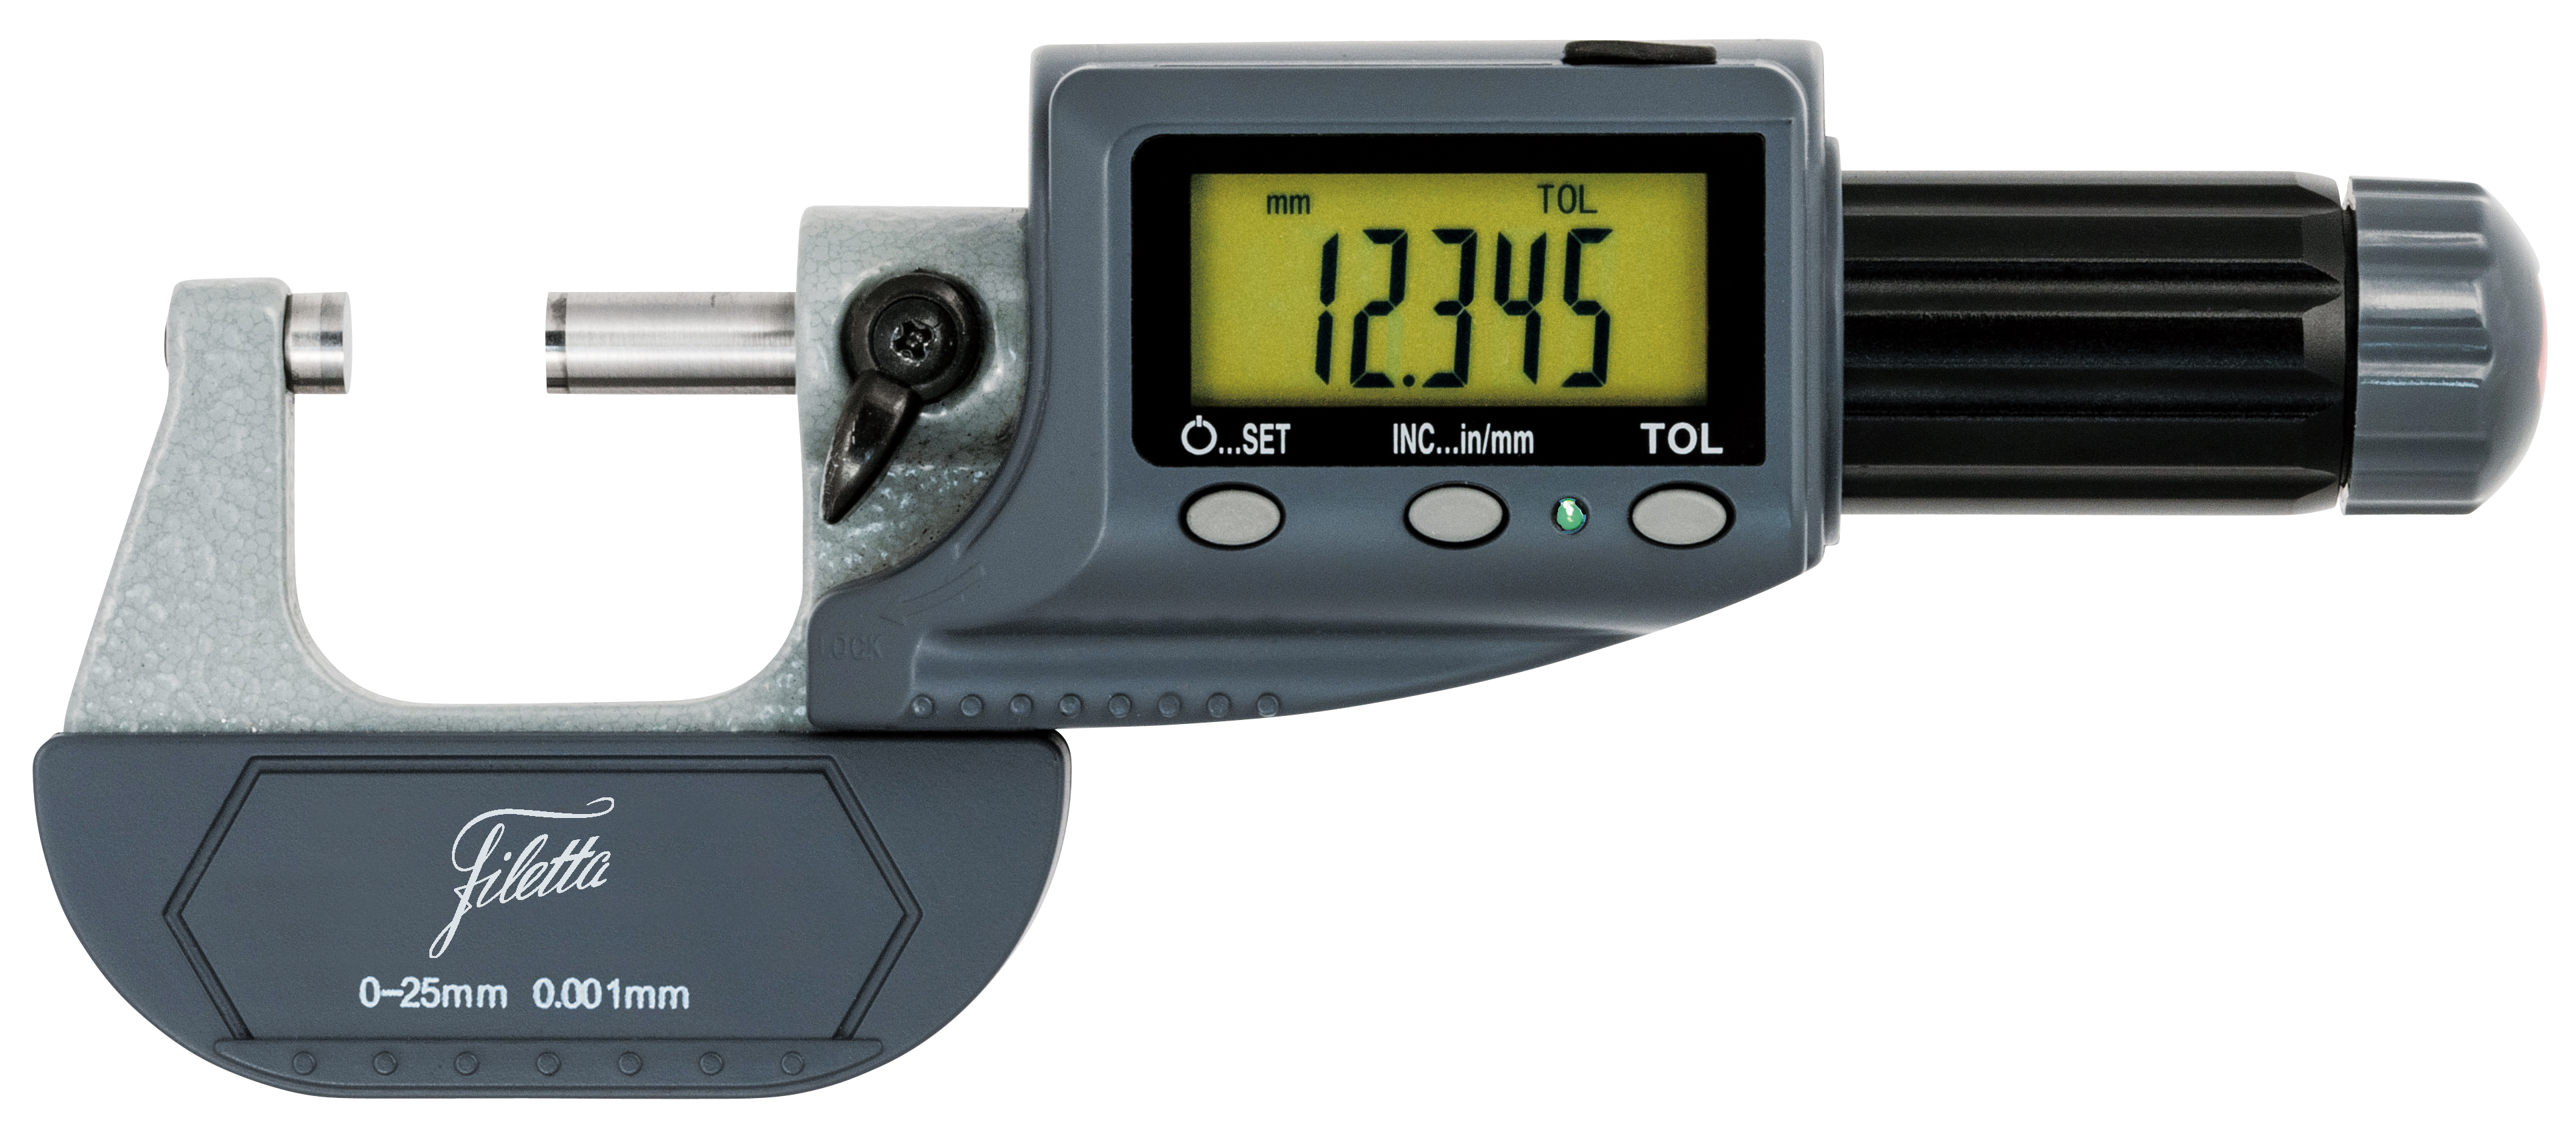 Digital outside micrometer with function to set tolerance limits, 75-100mm, IP 54